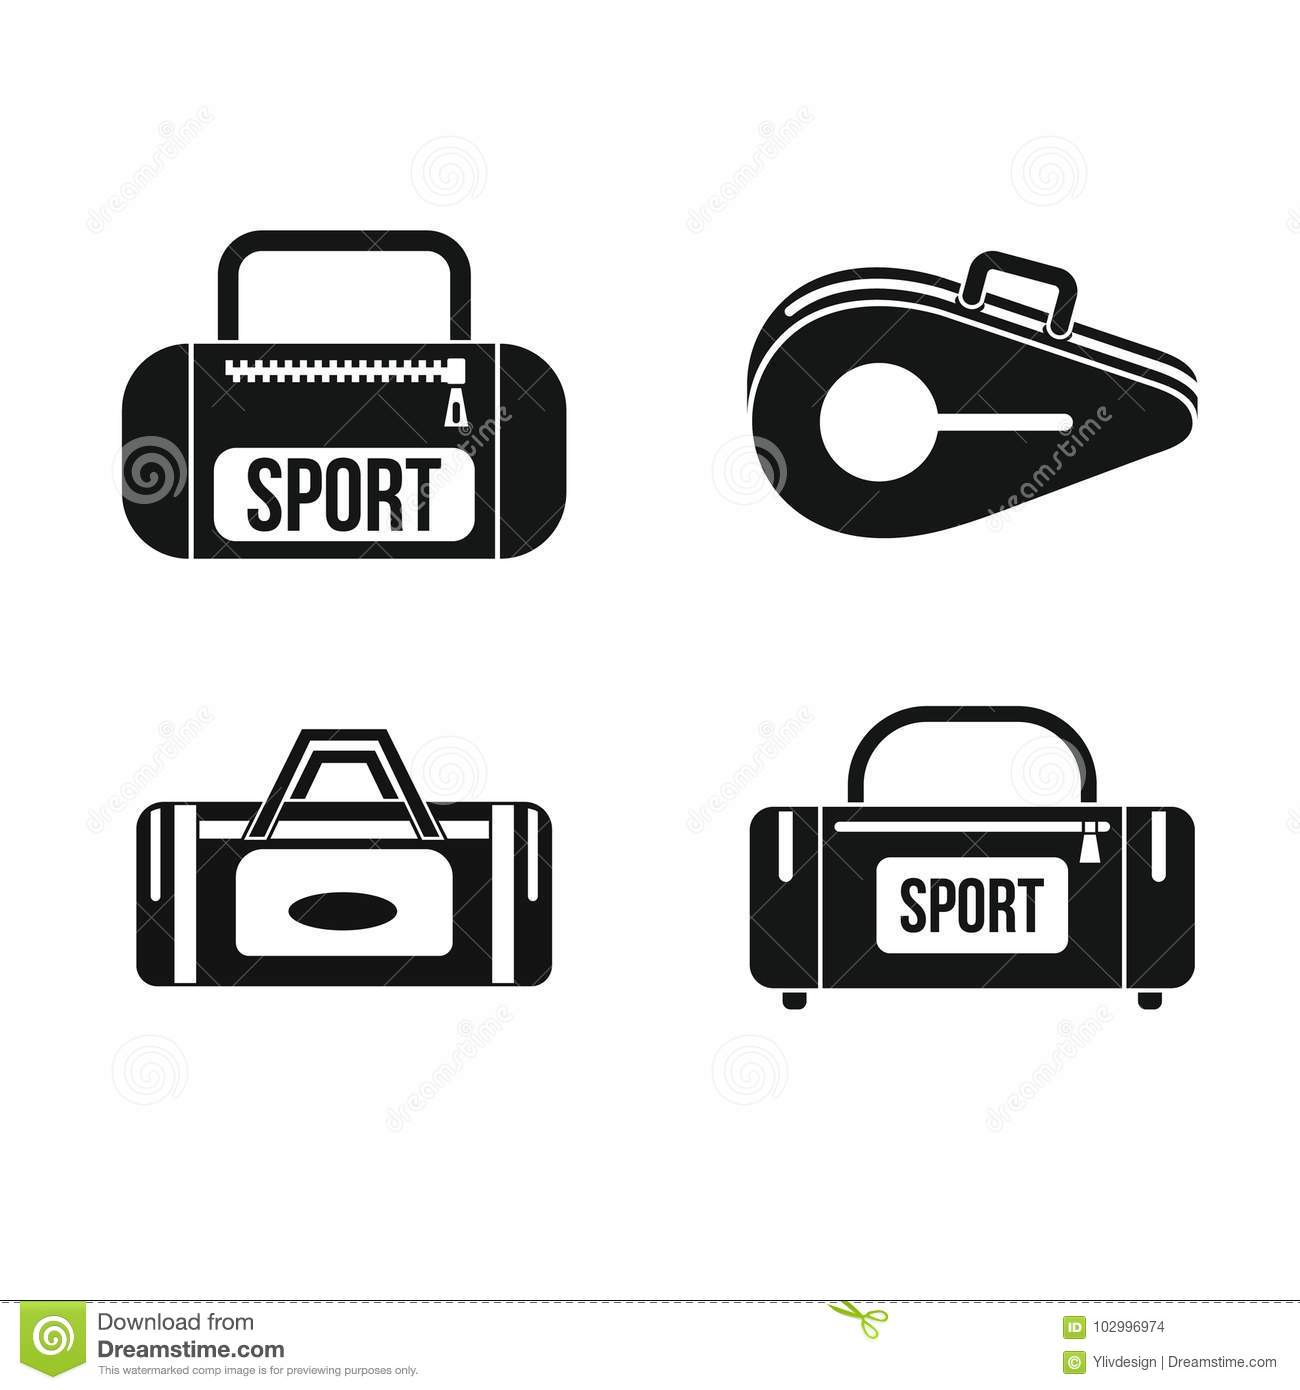 b5253310ba Sport bag icon set. Simple set of sport bag vector icons for web design  isolated on white background